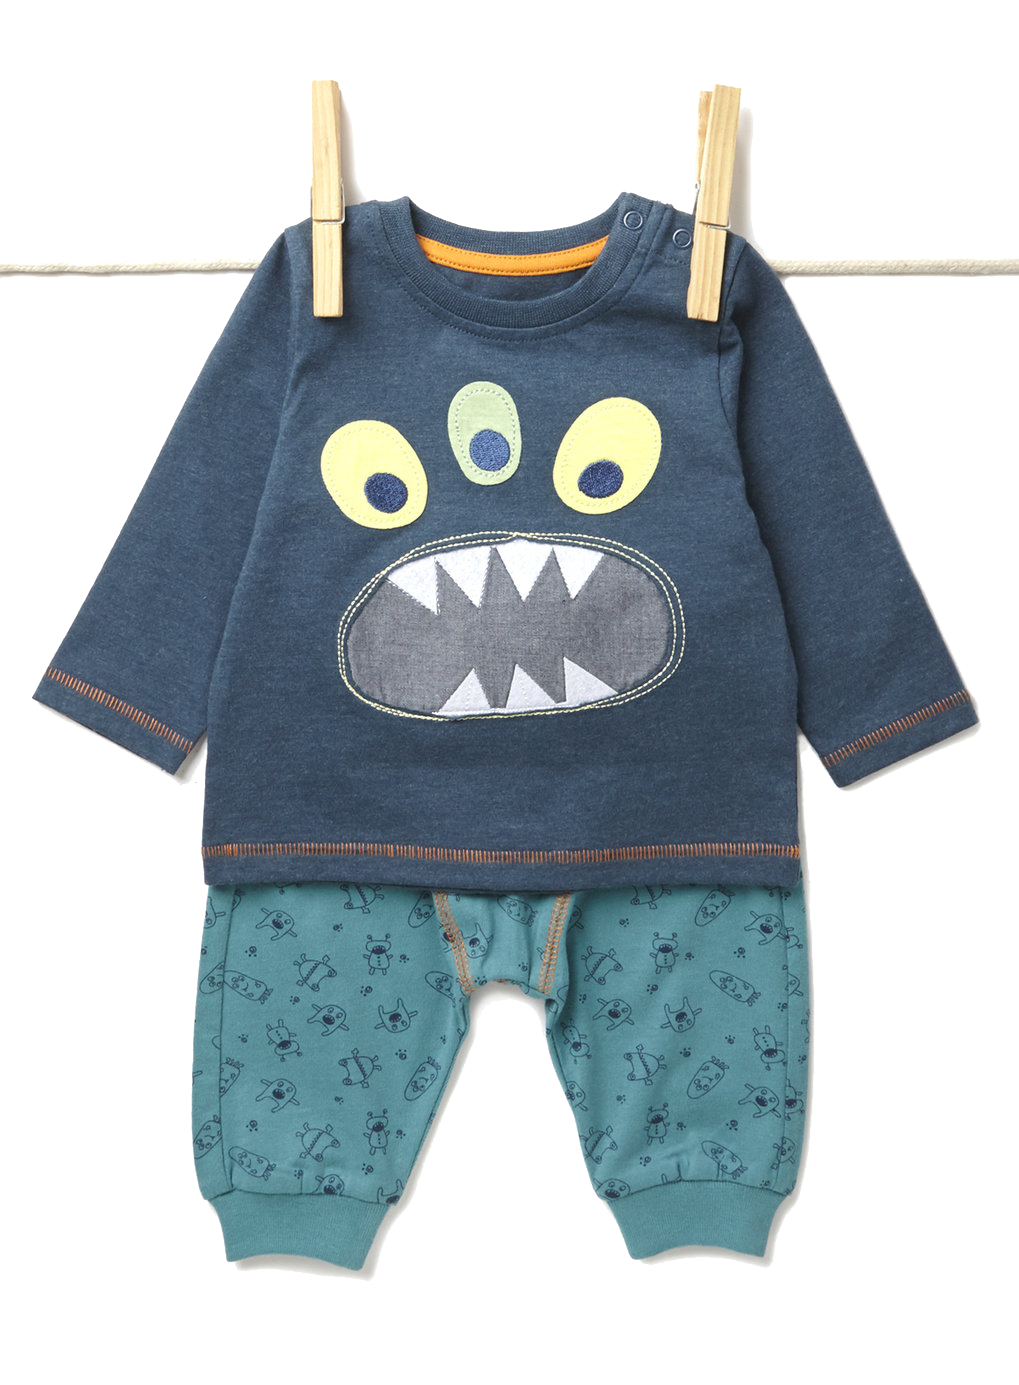 Kids clothes png. Large baby pinterest